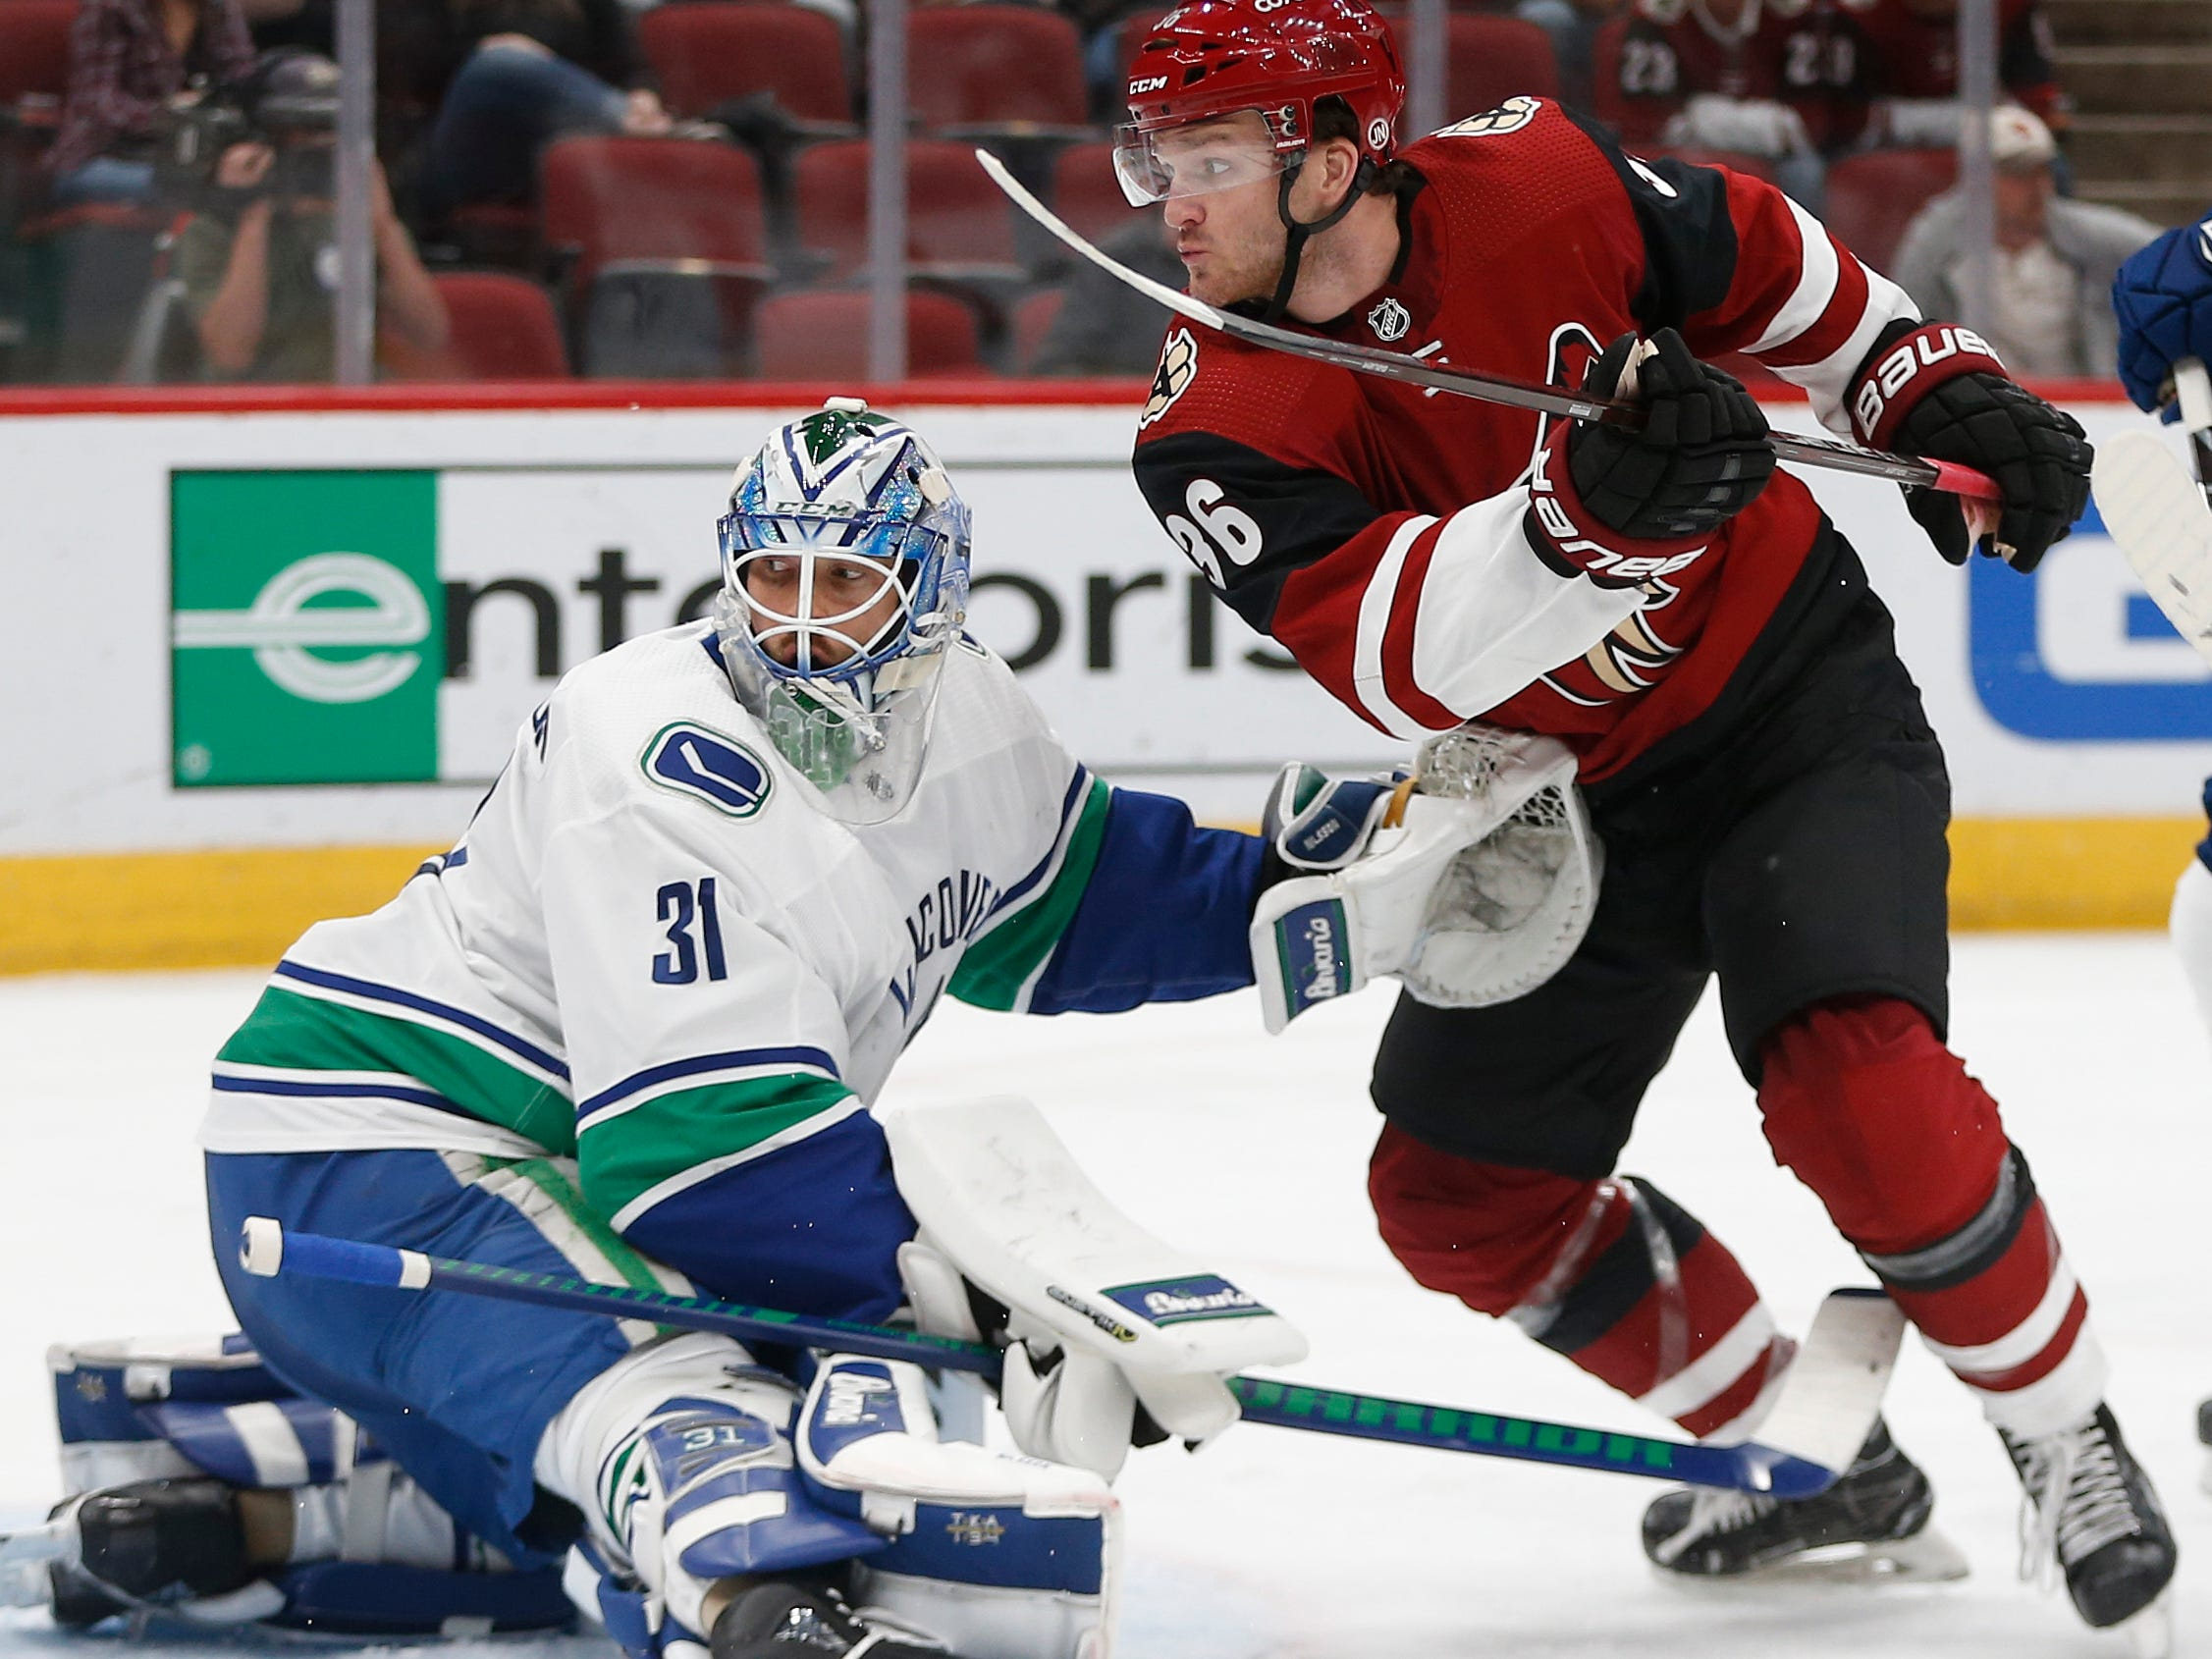 Coyotes' Christian Fischer (36) misses a chance to redirect a shot on Canucks' goalie Anders Nilsson (31) during the first period at Gila River Arena in Glendale, Ariz. on October 25, 2018.